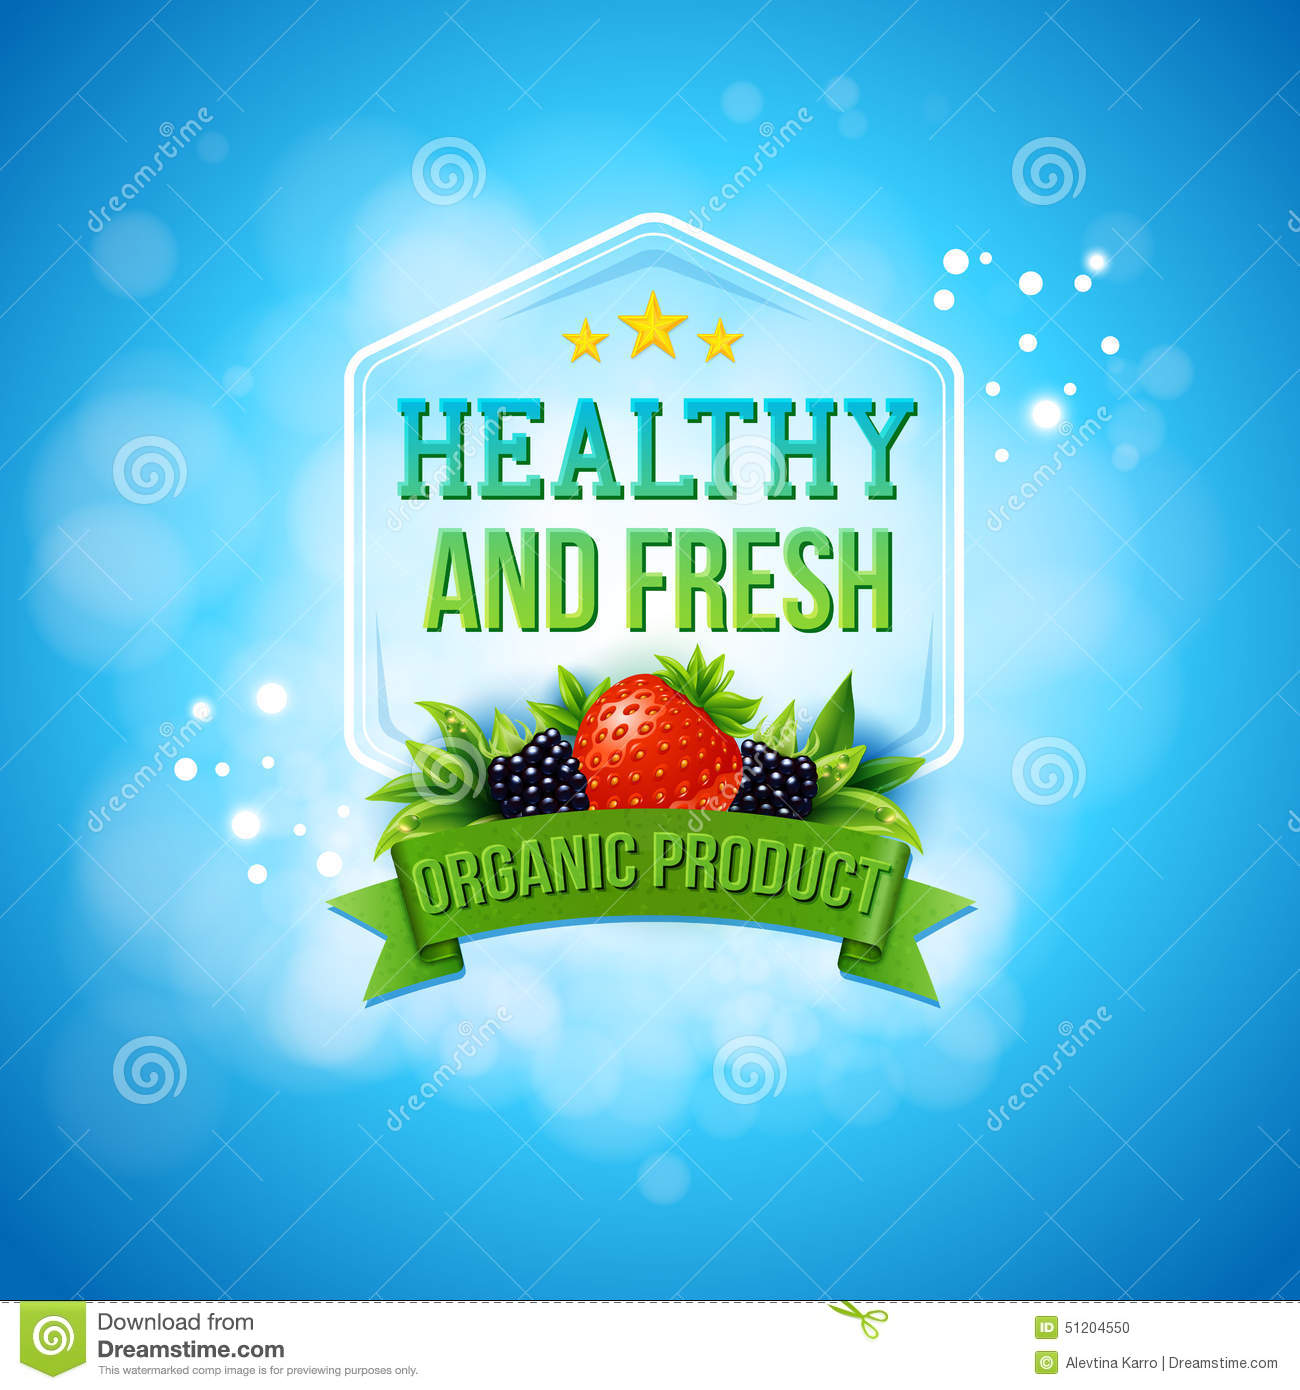 Advertising Poster For Fresh Farm Products Stock Vector - Image ...